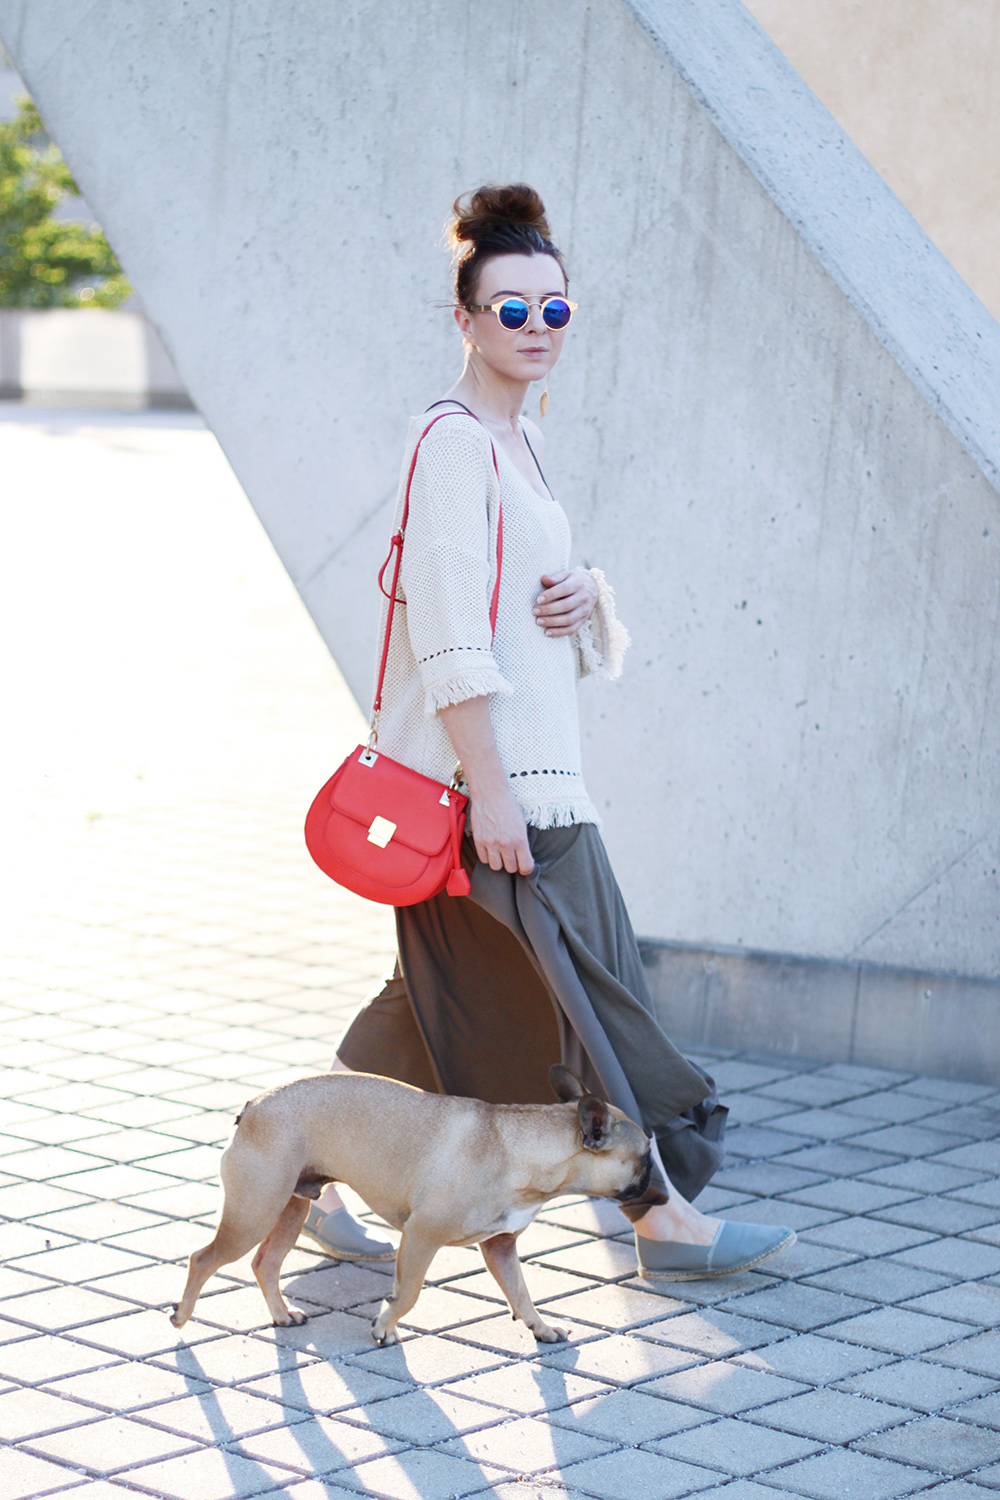 modeblog, who is mocca, blog, tirol, innsbruck, austrianblogger, olympia world innsbruck, frenchie, boho, espadrilles, outfit kombinieren, aldo tasche chloe lookalike, spitfire sonnenbrille dior so real lookalike, mango pullover fransen, messy bun